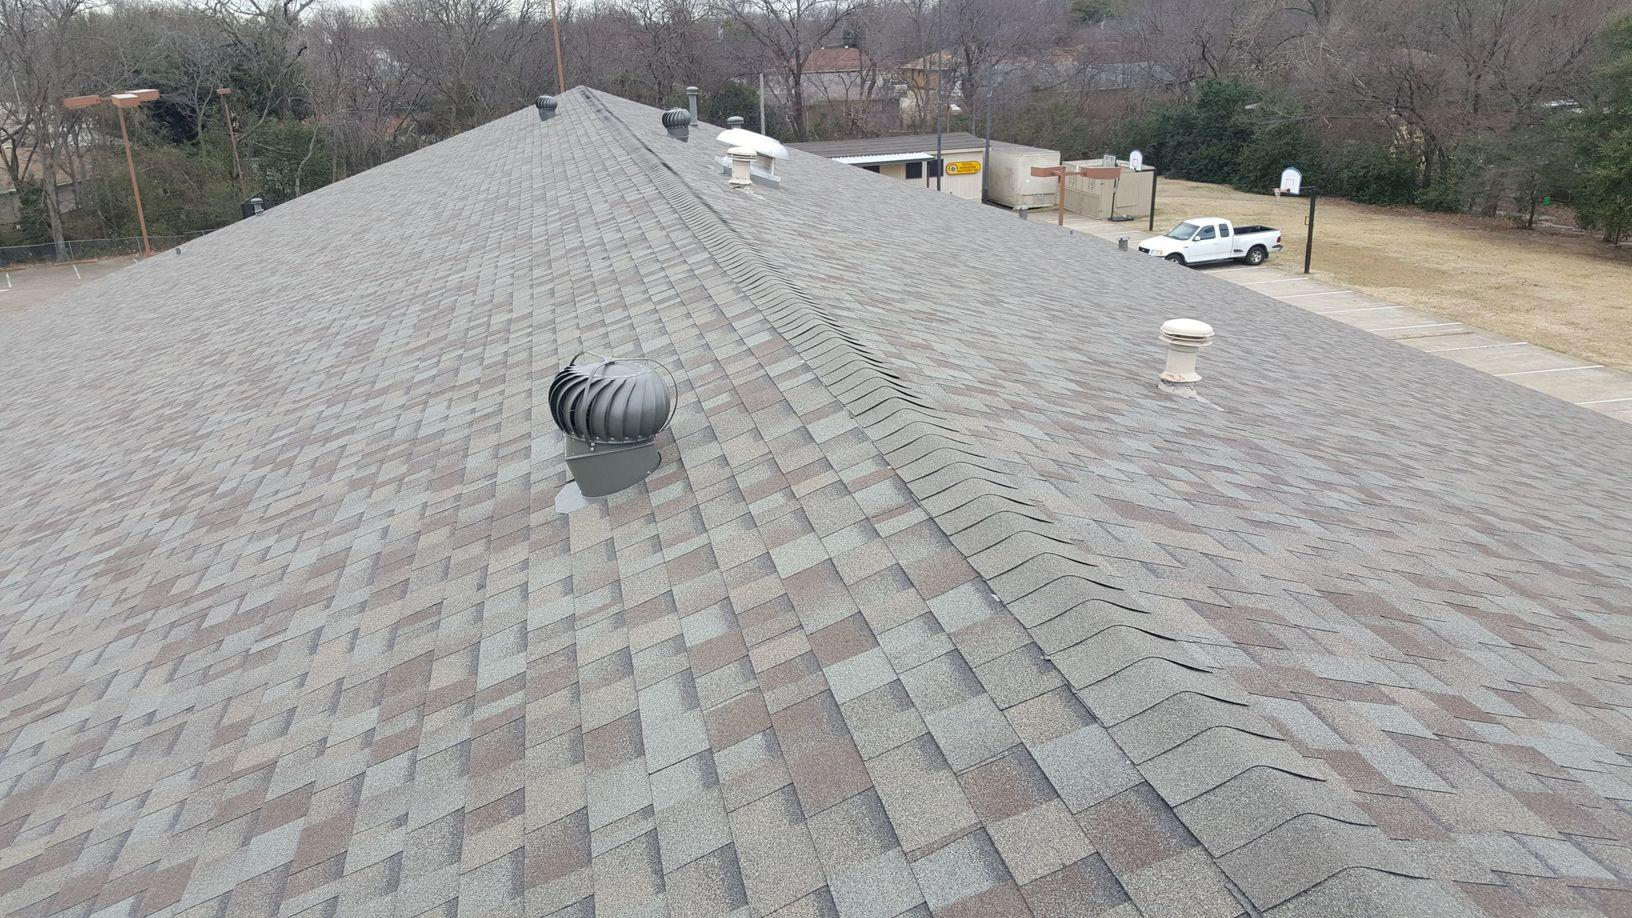 Church Roof Replacement in Dallas, TX - After Photo